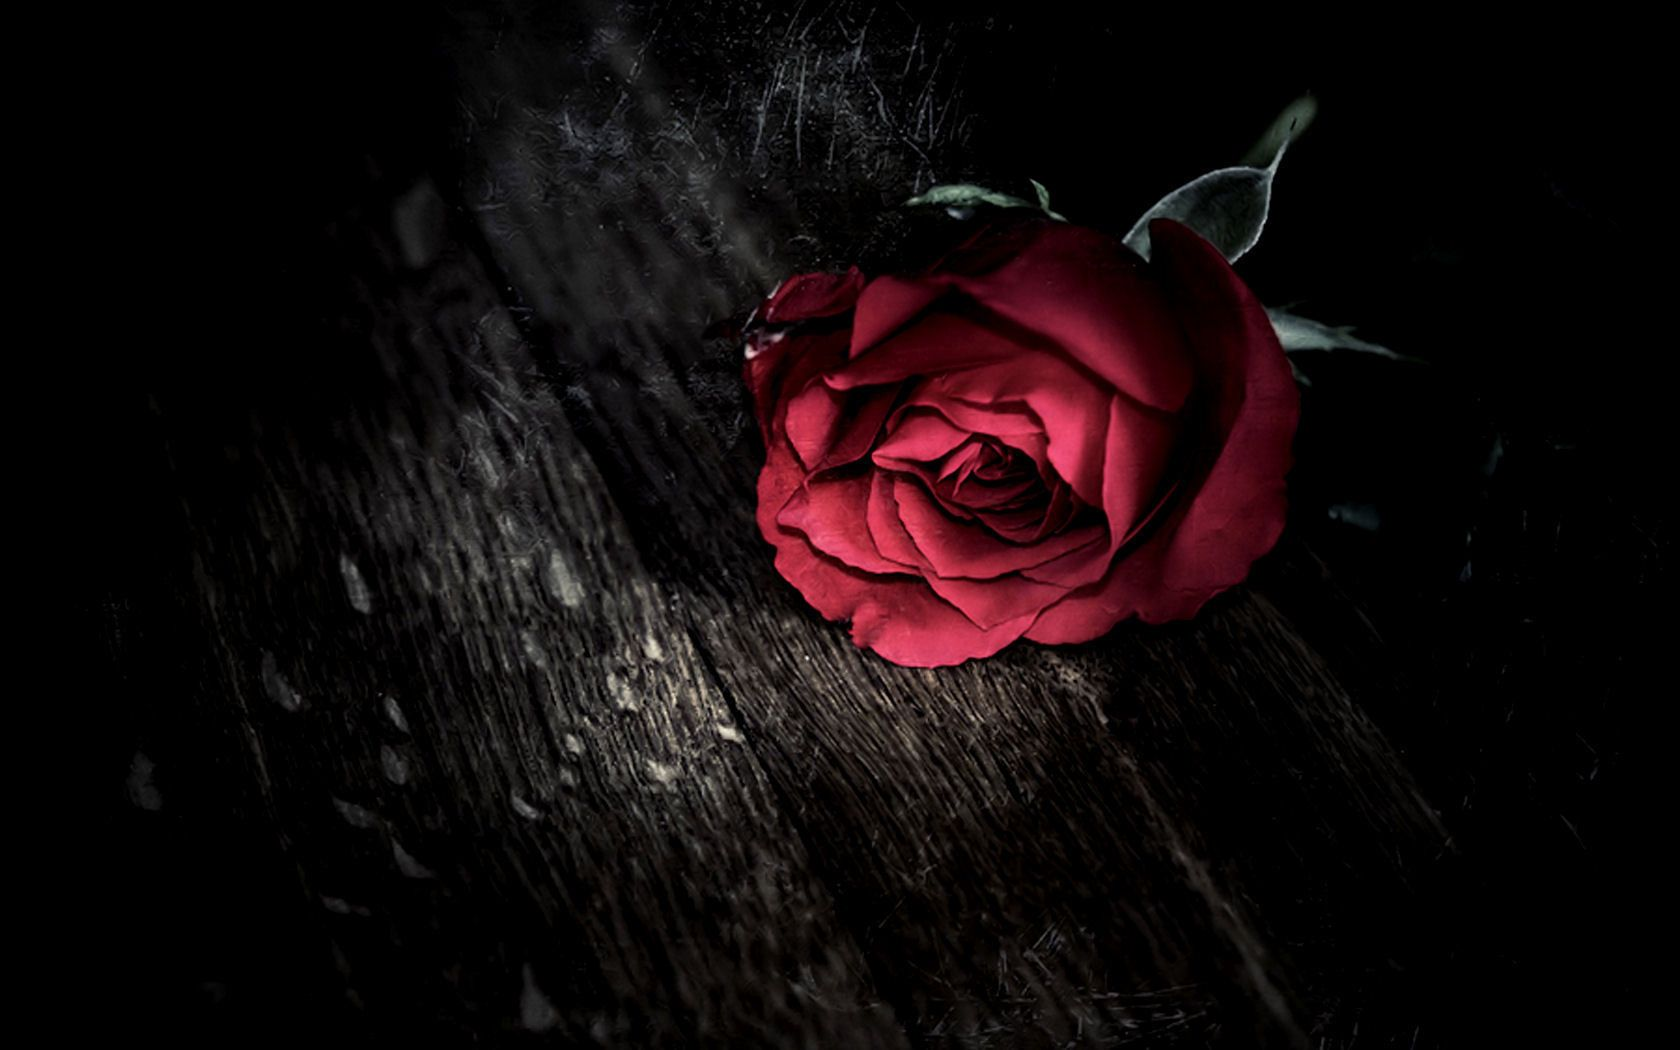 Pin By Anna On Writing Stuff Red Roses Wallpaper Beautiful Red Roses Images Rose Flower Wallpaper